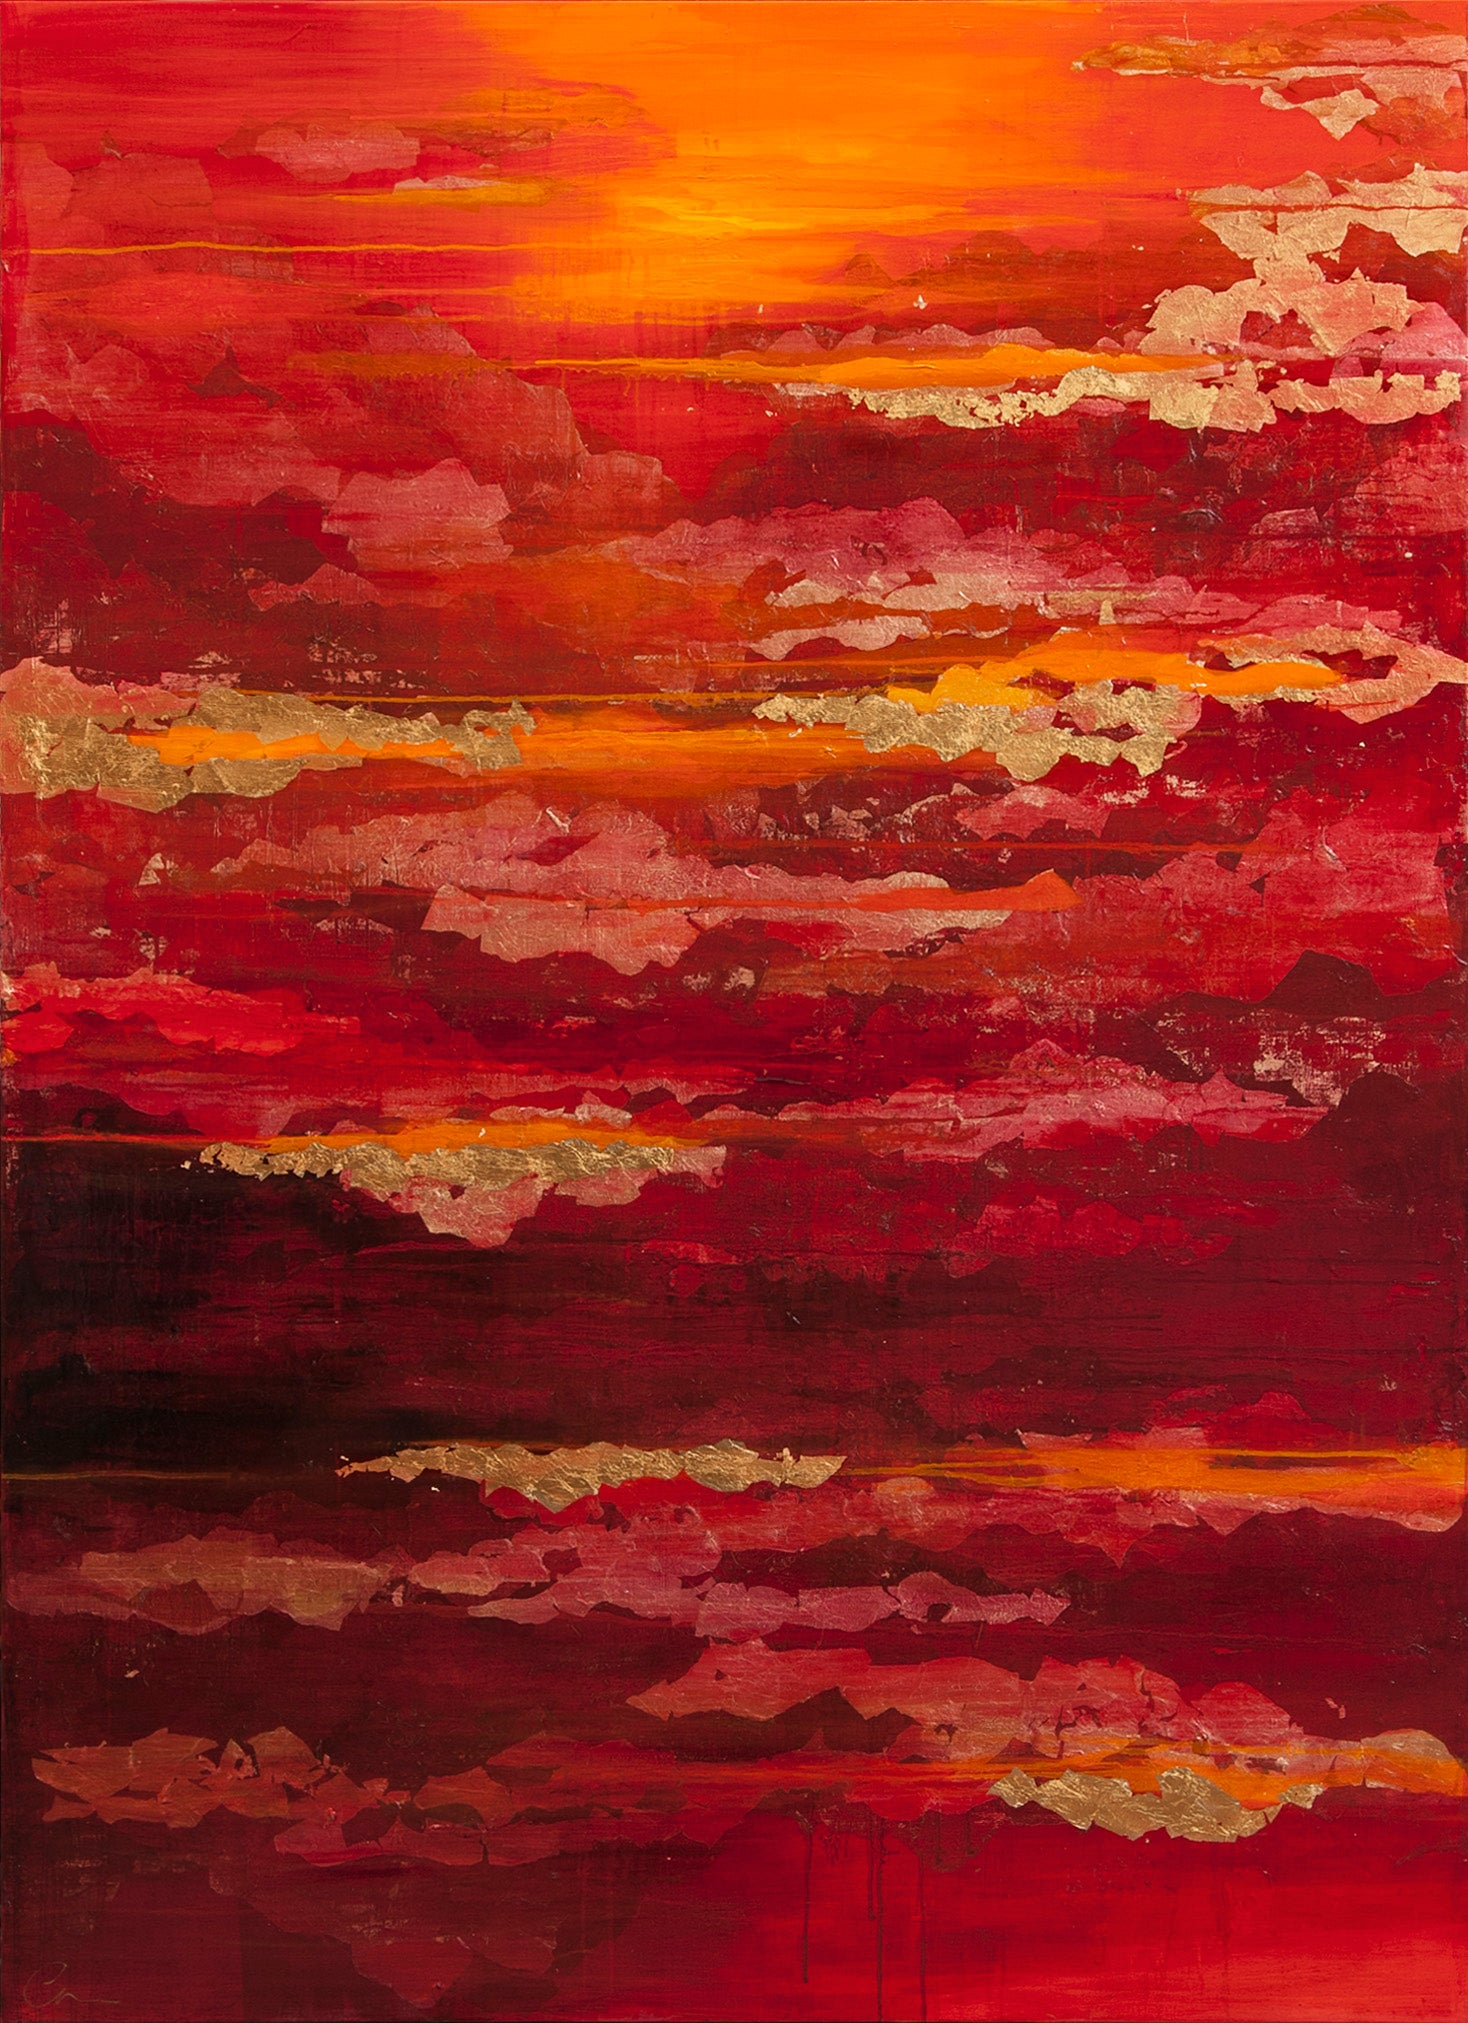 Fading Light - 21st Century, Contemporary, Abstract Painting, Gold Leaf